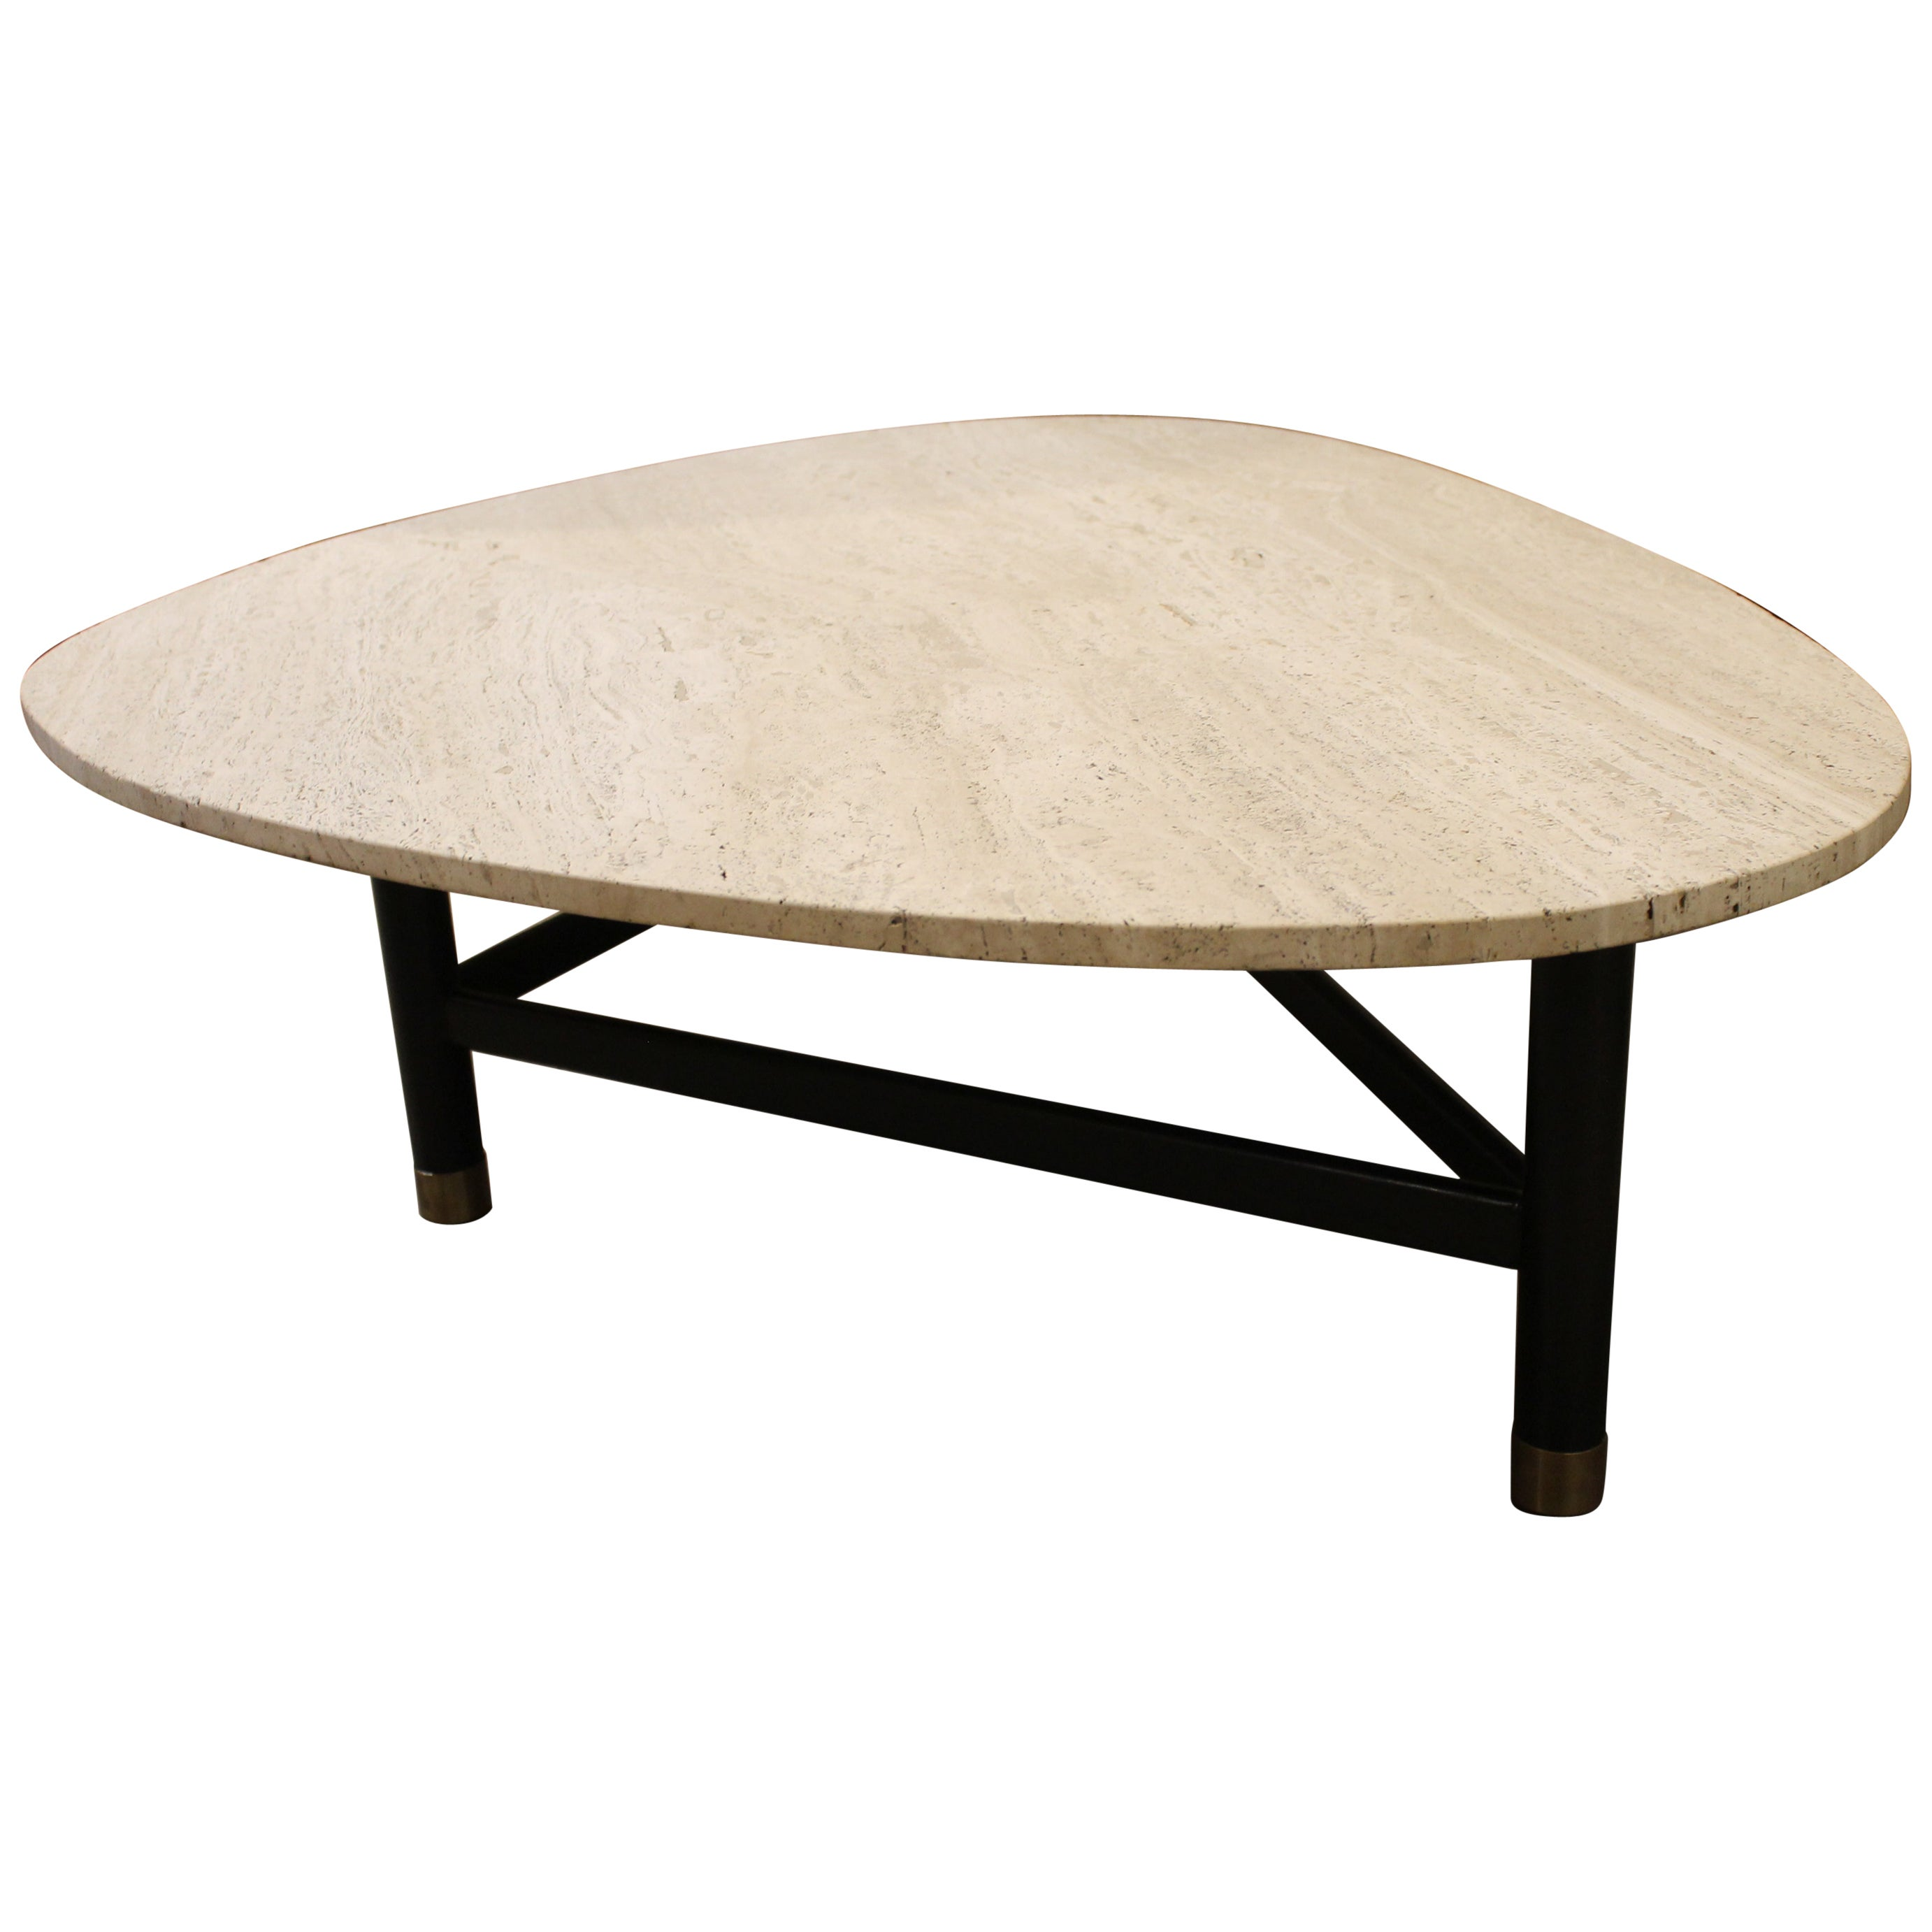 Harvey Probber Coffee Table with Travertine Top